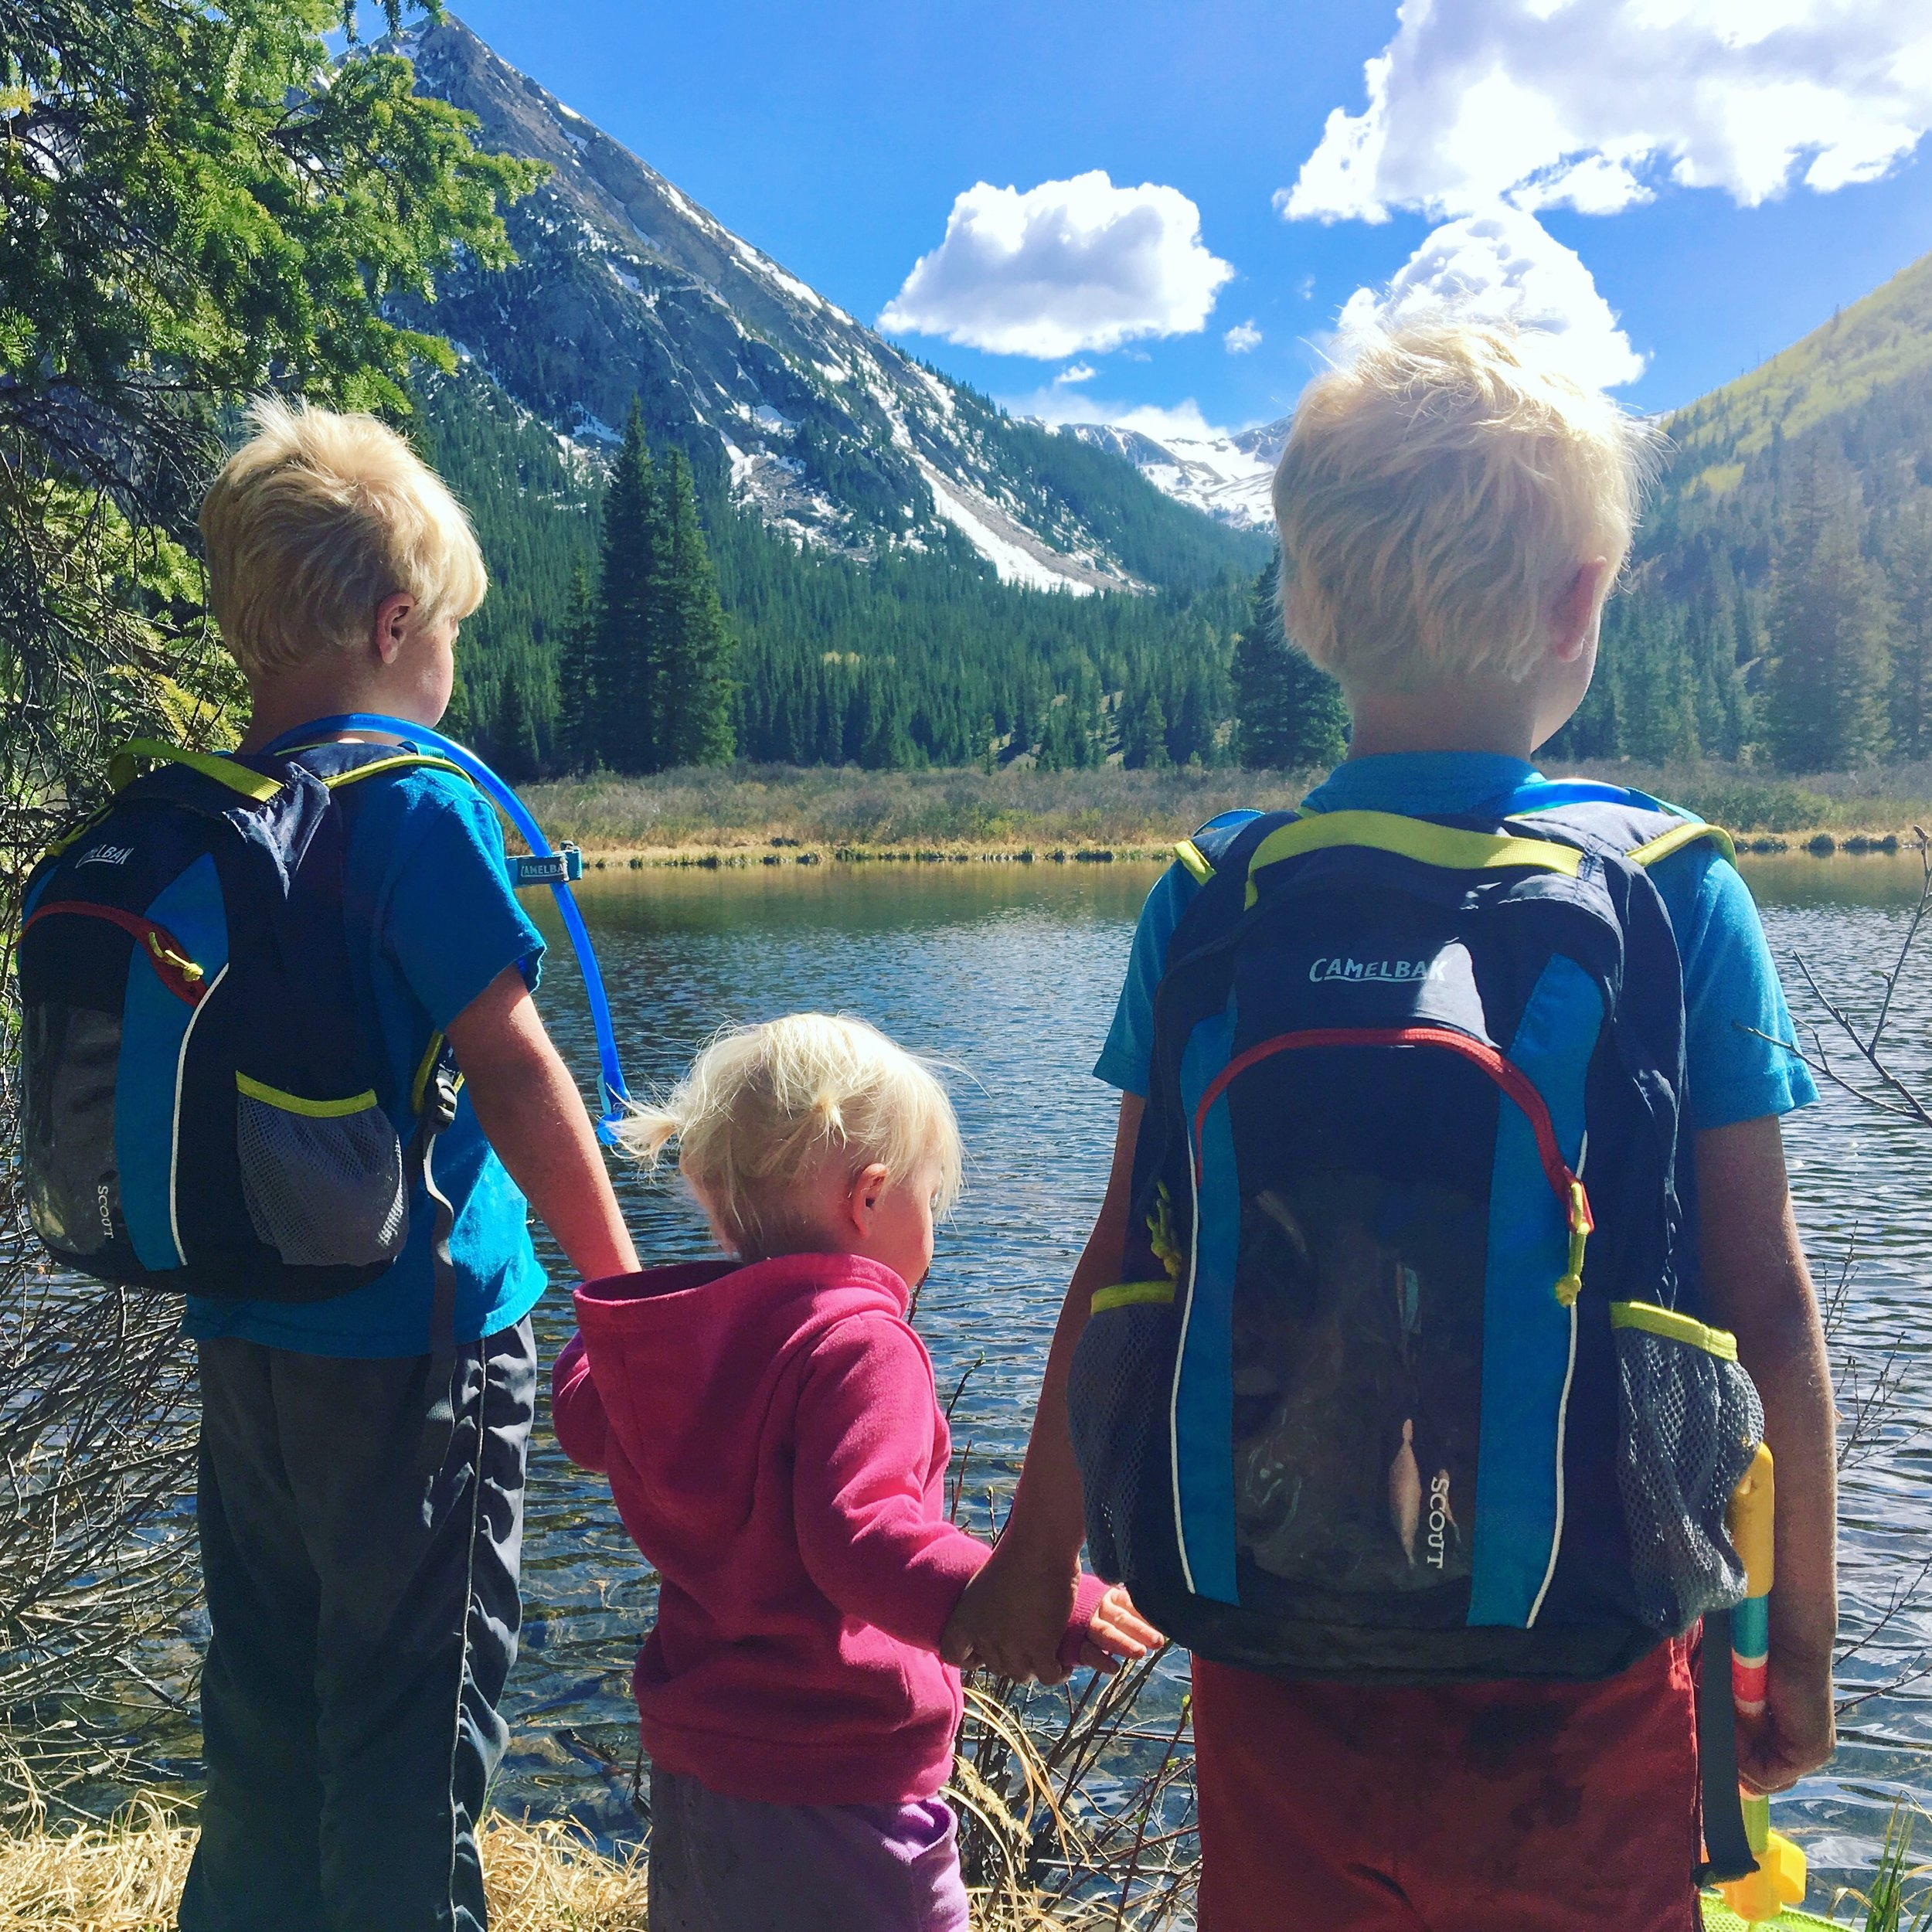 kids looking out at lake mountains.JPG